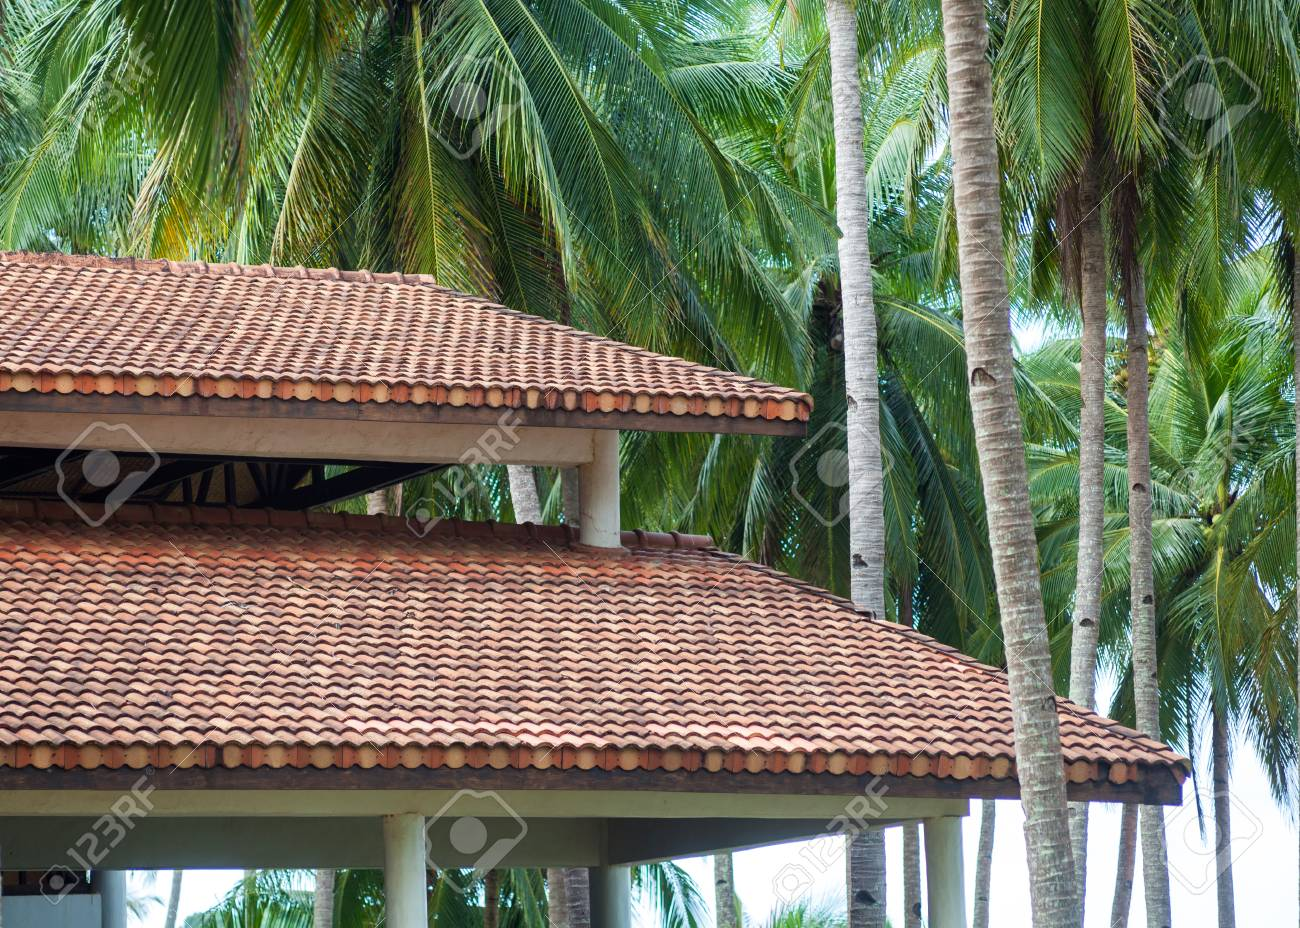 Banque dimages modern wooden house with red clay tile roof against the background of palm trees roofing construction building attic house construction